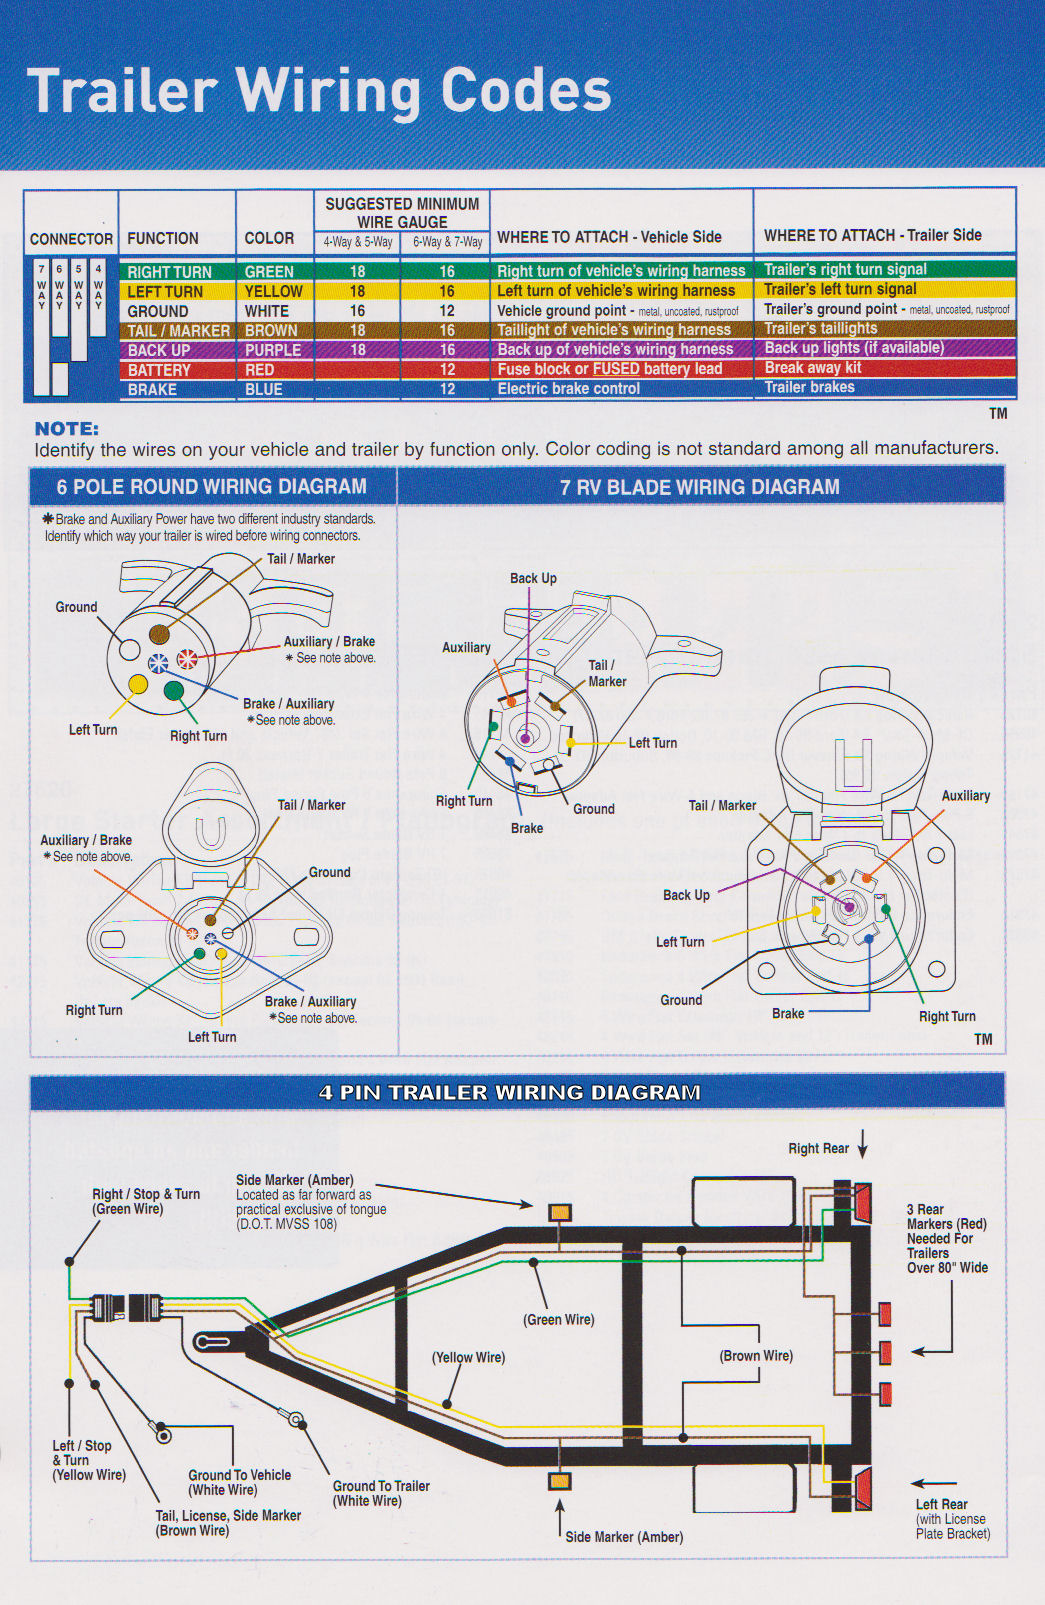 Wiring Diagram For Hornet By Keystone Trailer Kiefer Built Auto Plug Us Cargo